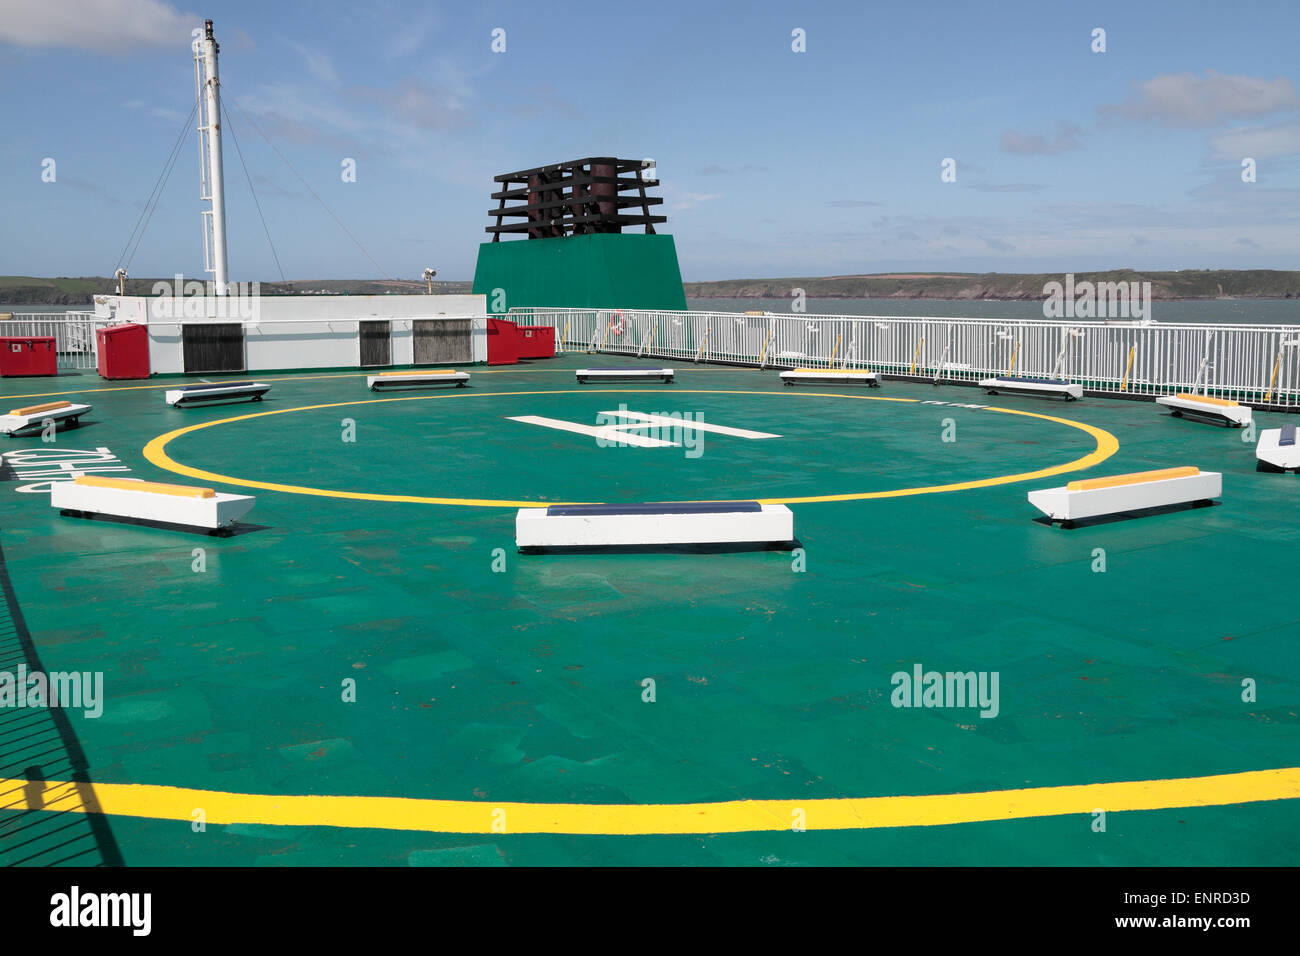 The emergency heli-pad on the Irish Ferries owned ferry, the 'Isle of Inishmore'. - Stock Image